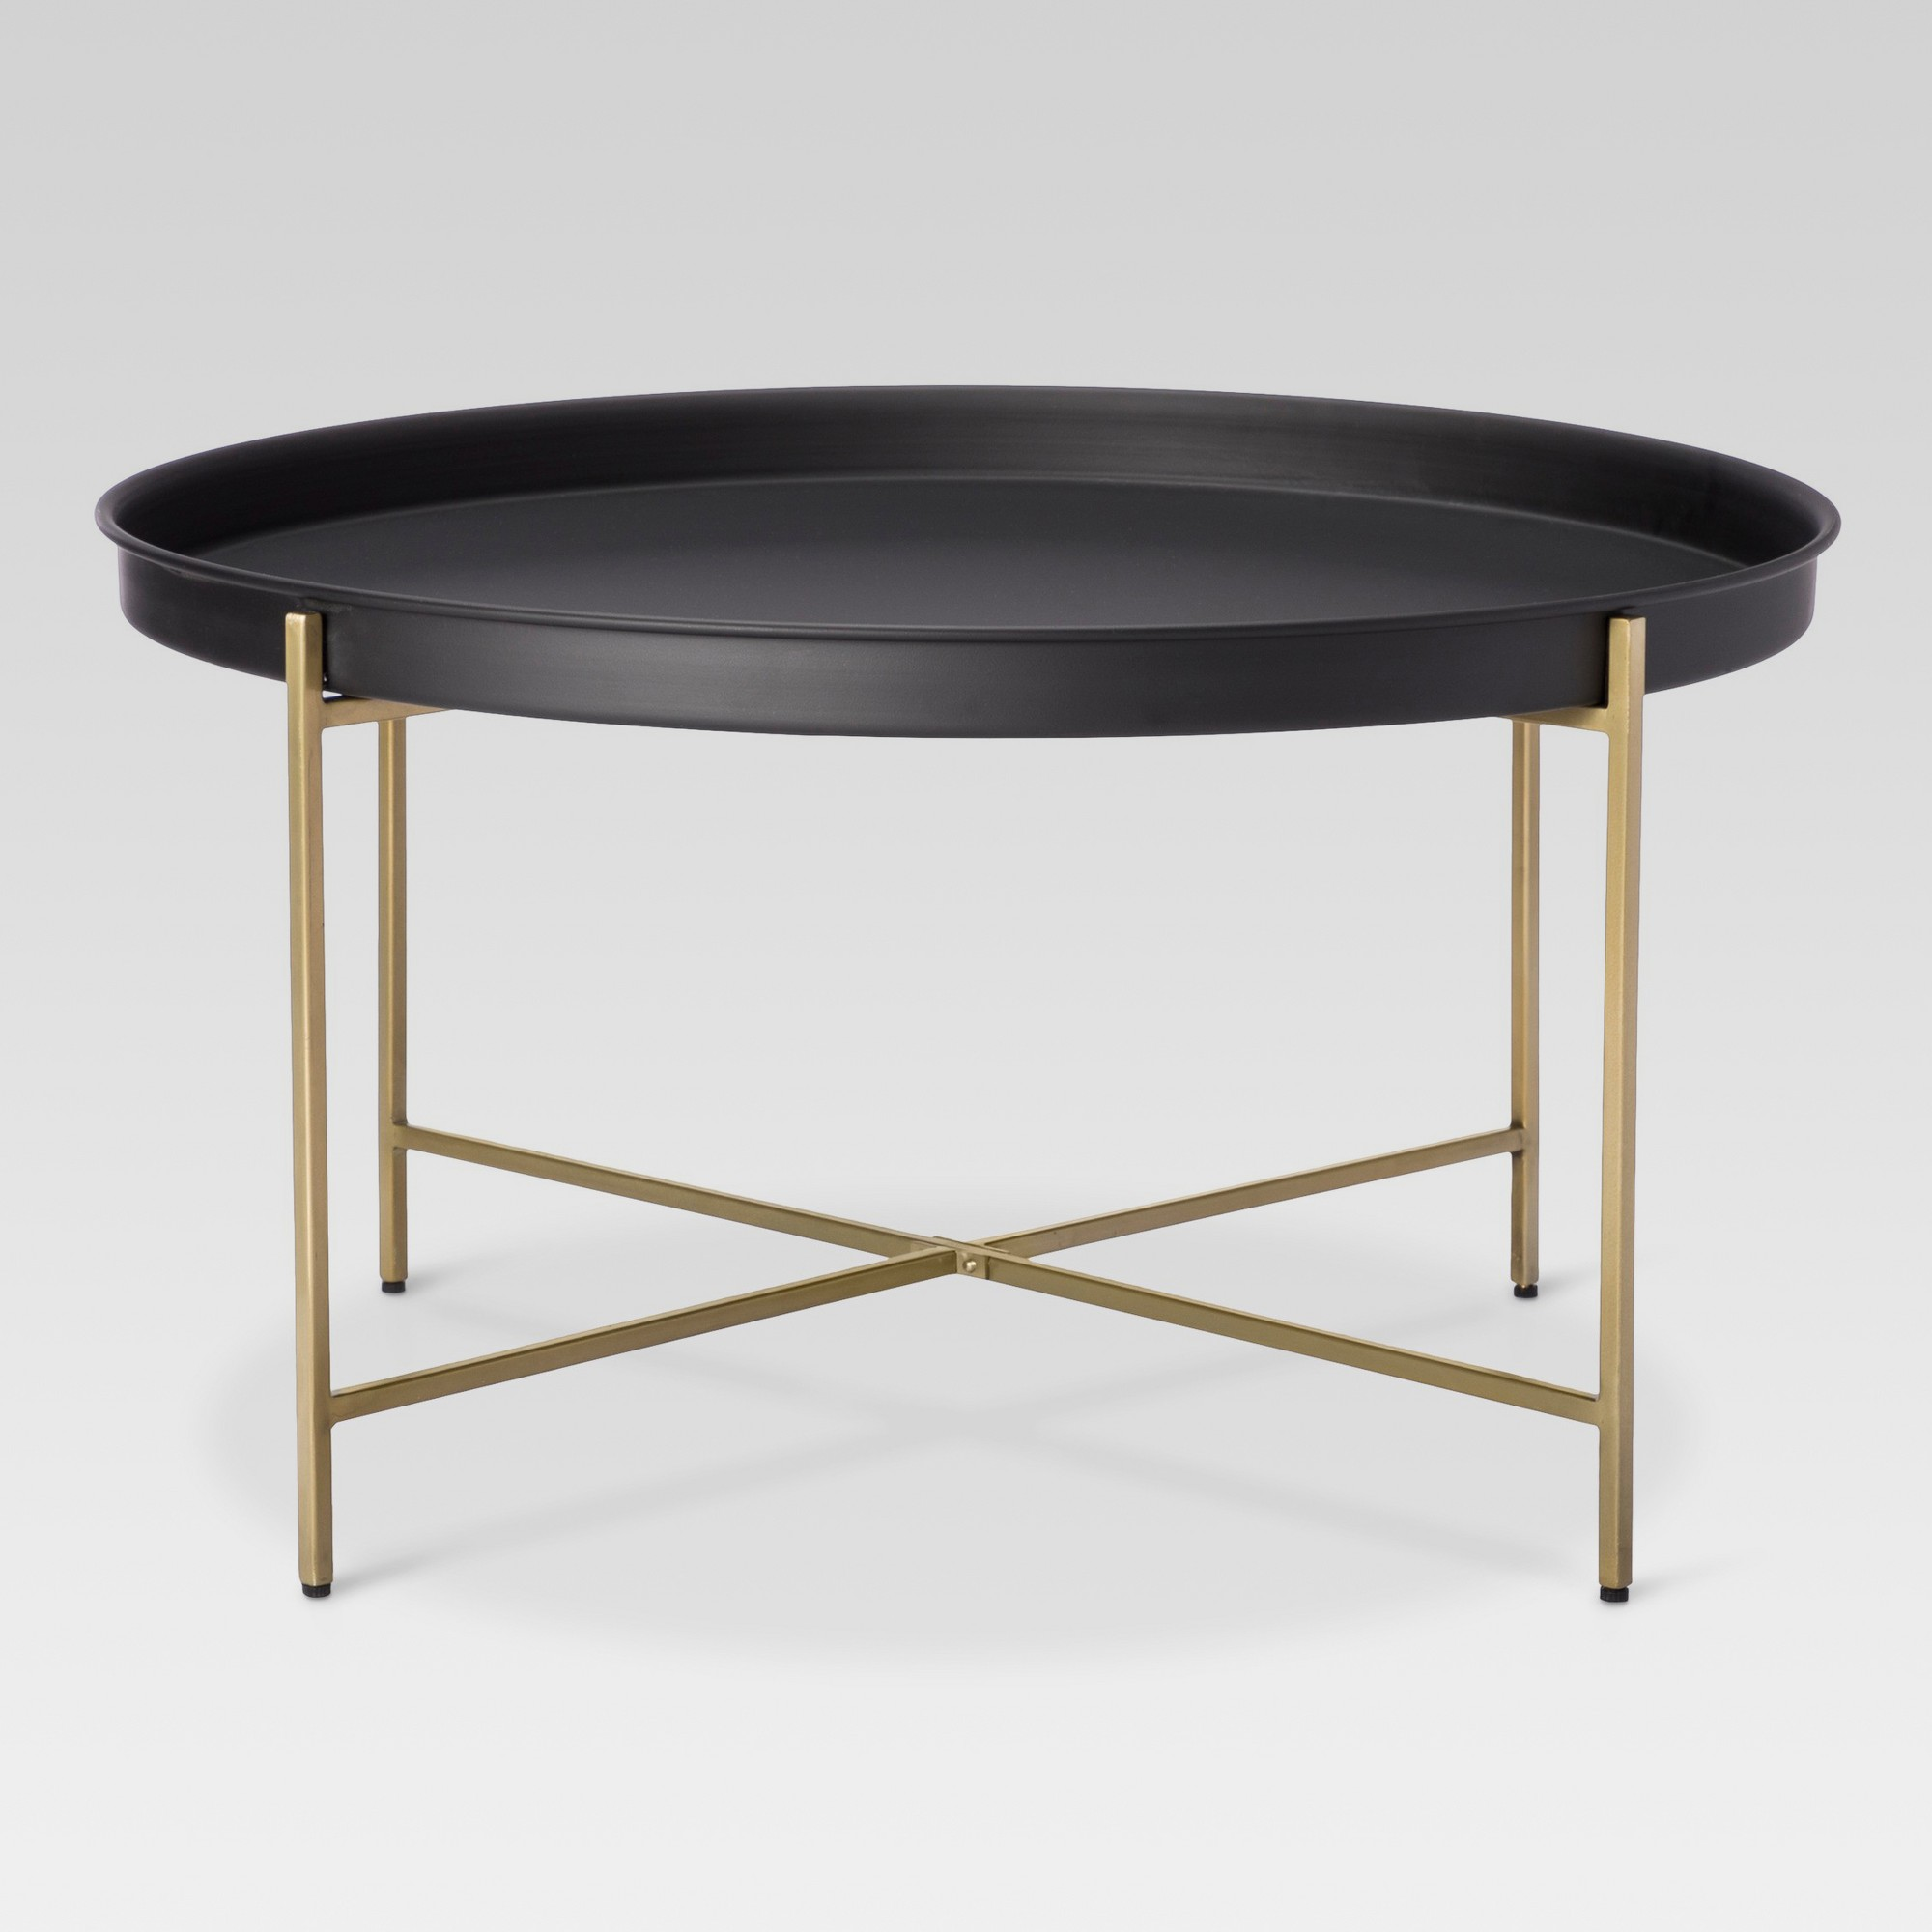 brass tray coffee table threshold black products living room accent world market lamps counter height dining set bedside ideas brown and end tables ikea drawers pier one furniture